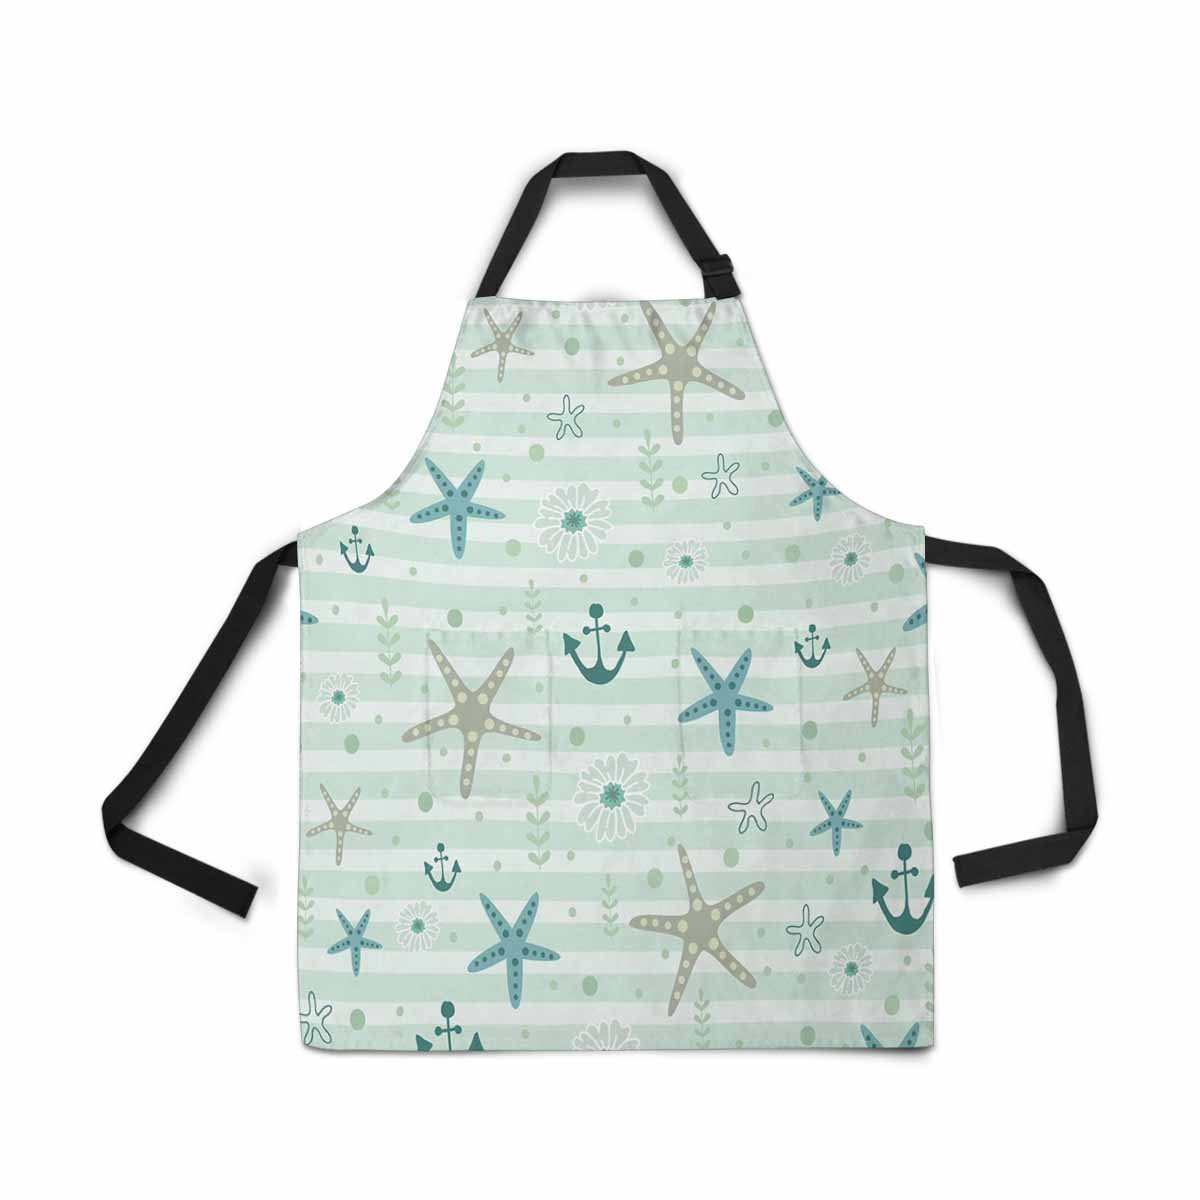 InterestPrint Adjustable Bib Apron for Women Men Girls Chef with Pockets, Sea Ocean Starfish Anchor Travel Summer Novelty Kitchen Apron for Cooking Baking Gardening Pet Grooming Cleaning